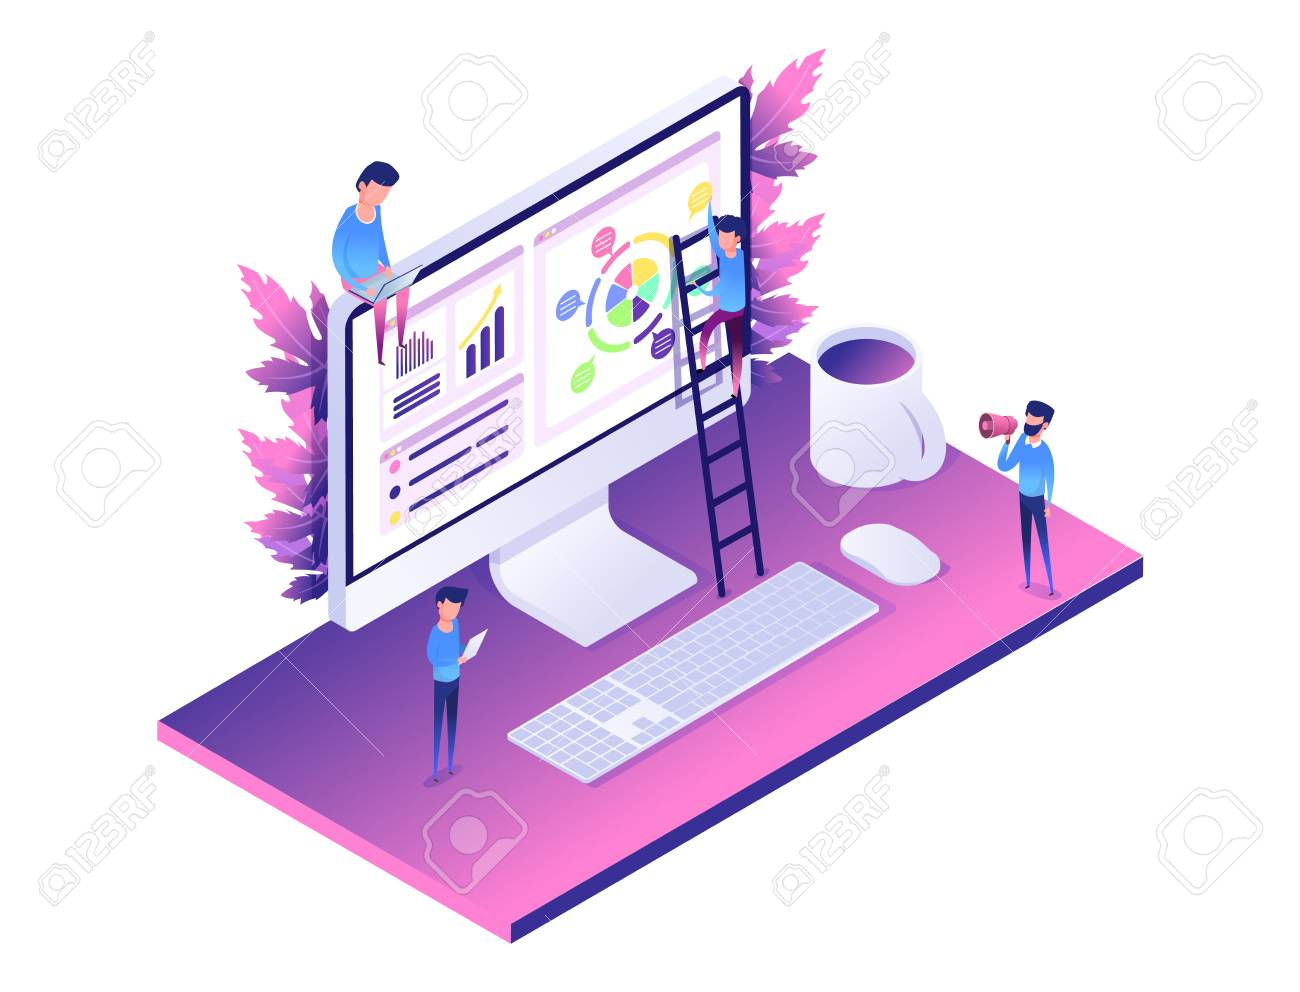 hight resolution of modern web concept flat isometric design of data analysis computer diagram people helping